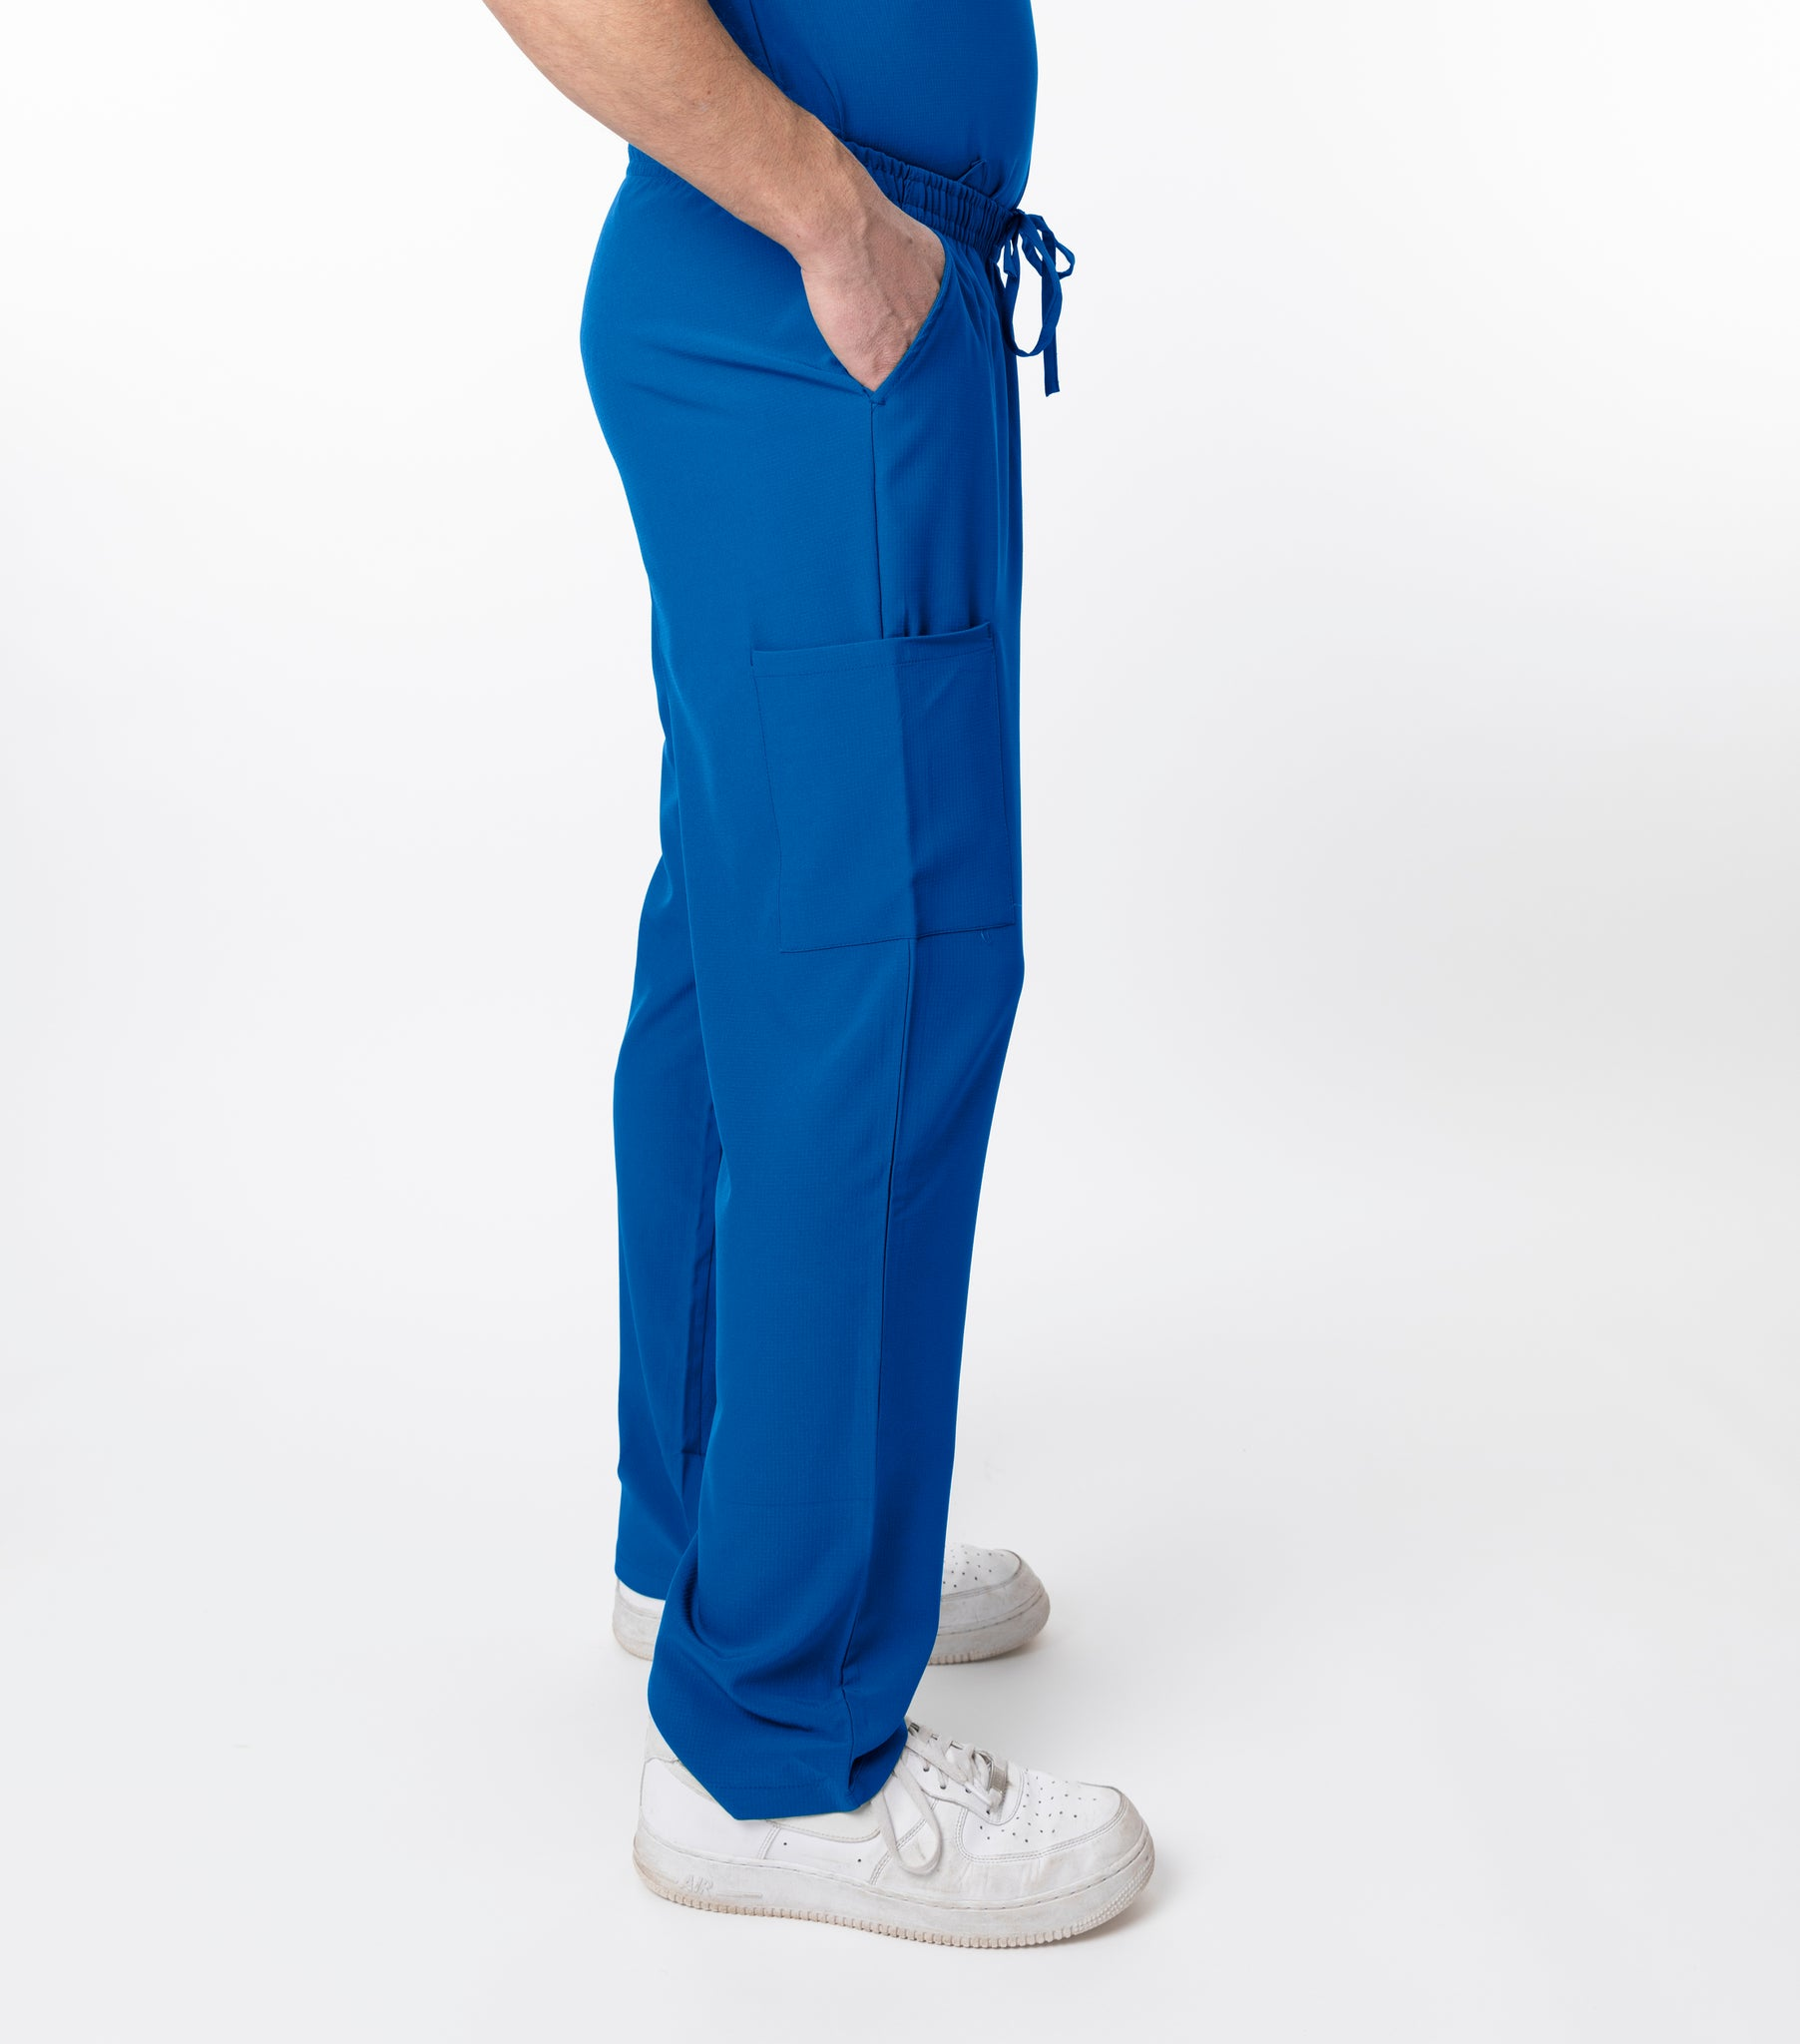 2201 Men's Scrub Pant by Greentown - Scrub Nation Canada